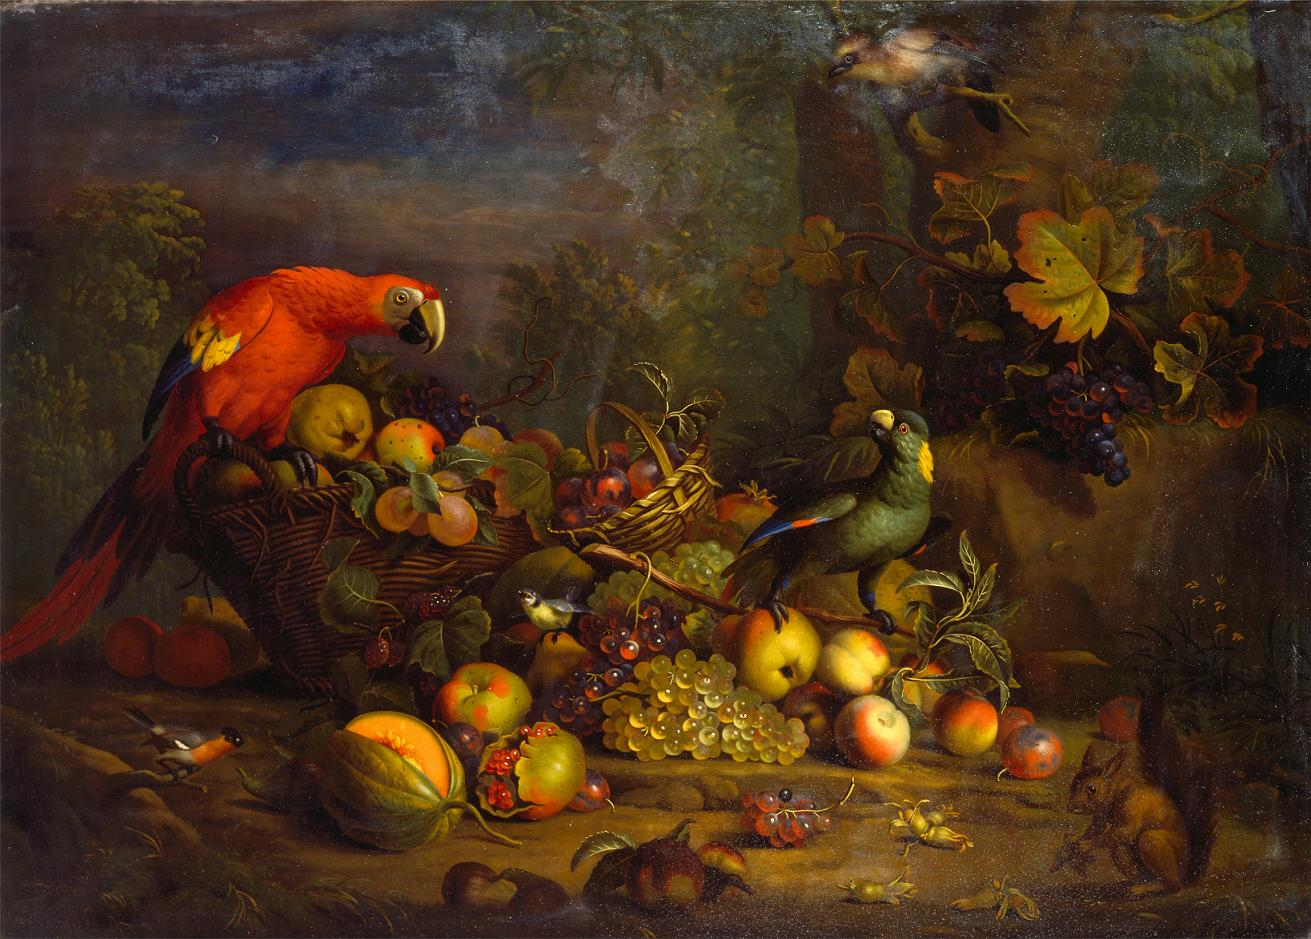 Tobias_Stranover_-_Parrots_and_Fruit_with_Other_Birds_and_a_Squirrel_-_Google_Art_Project